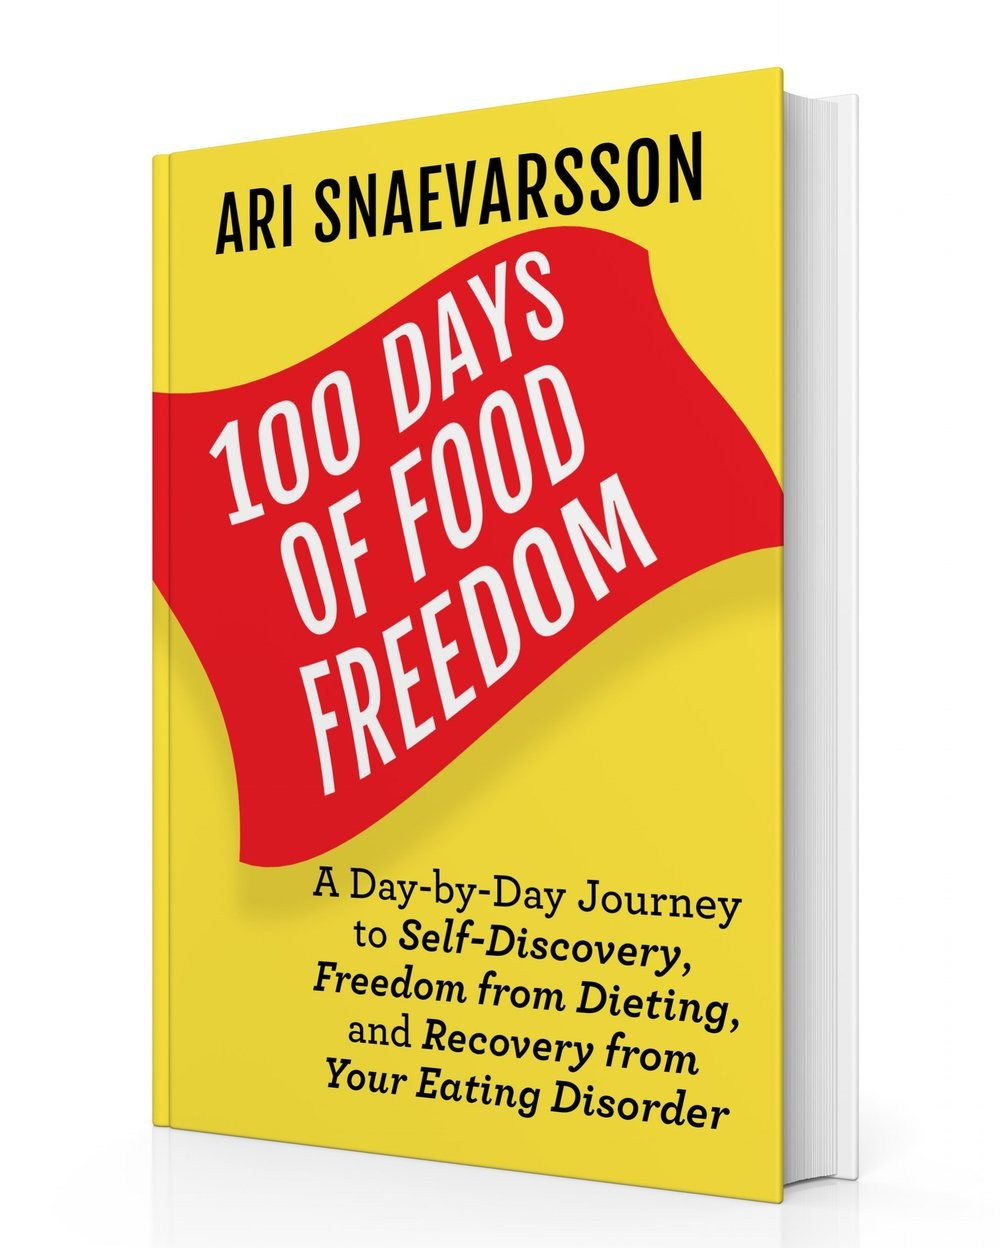 100 Days of Food Freedom Book.jpg